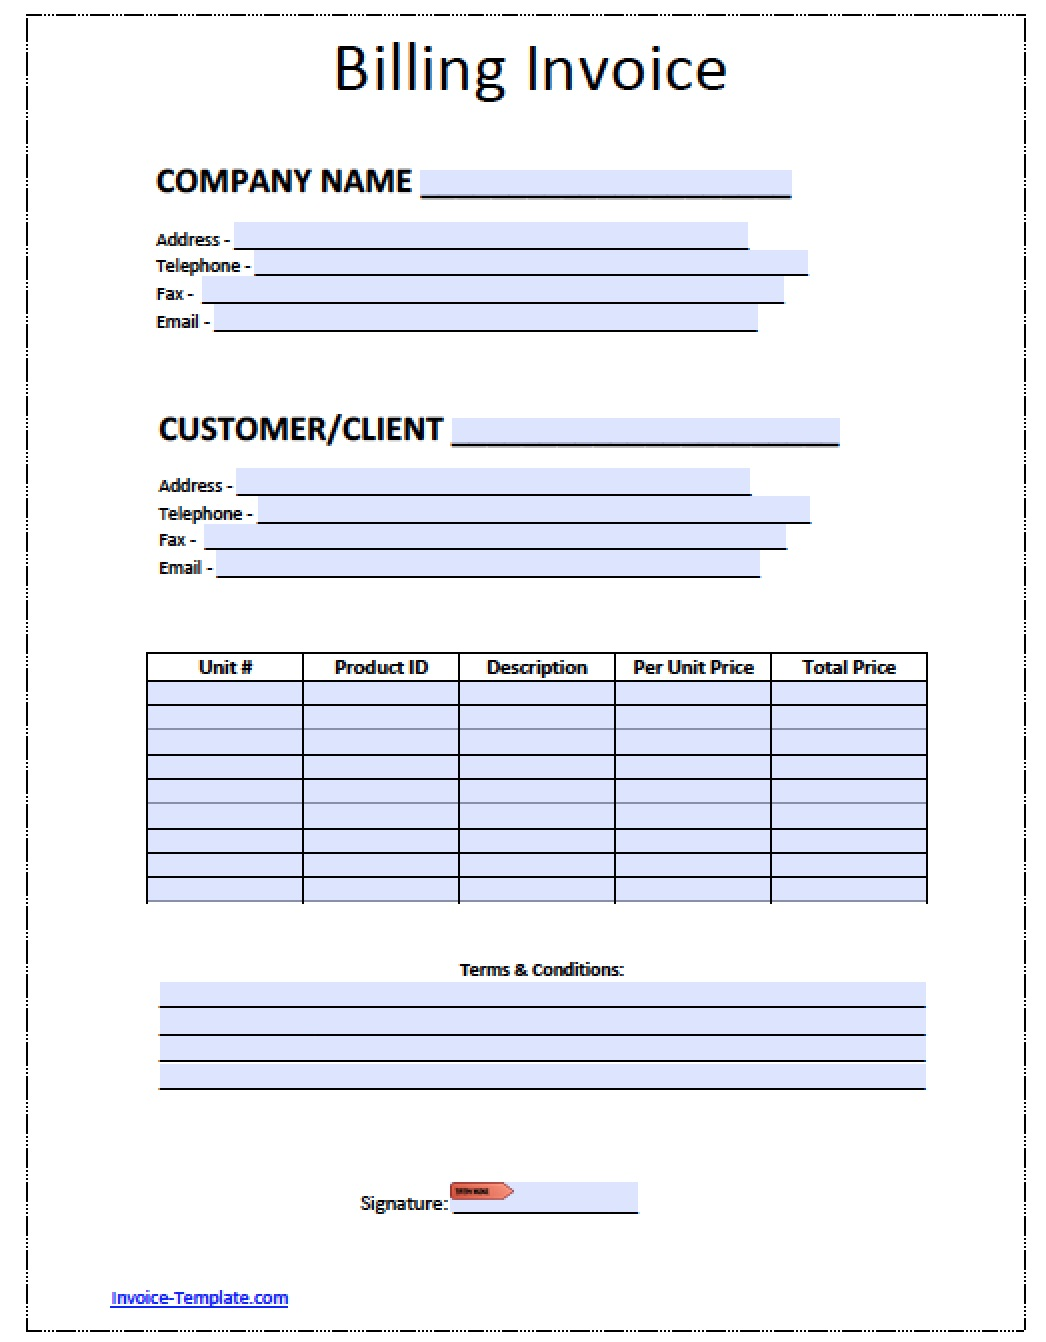 Shopdesignsus  Pleasing Billing Invoice Invoices Faq U Cloudflare Support Billing  With Glamorous Free Billing Invoice Template  Excel  Pdf  Word Doc  Billing With Beauteous Receipts And Payments Account Format Also Sample Receipts Templates In Addition Sample Receipts Of Payment And Dartford Crossing Receipt As Well As Online Receipt Storage Additionally Receipt Forms Free Download From Happytomco With Shopdesignsus  Glamorous Billing Invoice Invoices Faq U Cloudflare Support Billing  With Beauteous Free Billing Invoice Template  Excel  Pdf  Word Doc  Billing And Pleasing Receipts And Payments Account Format Also Sample Receipts Templates In Addition Sample Receipts Of Payment From Happytomco